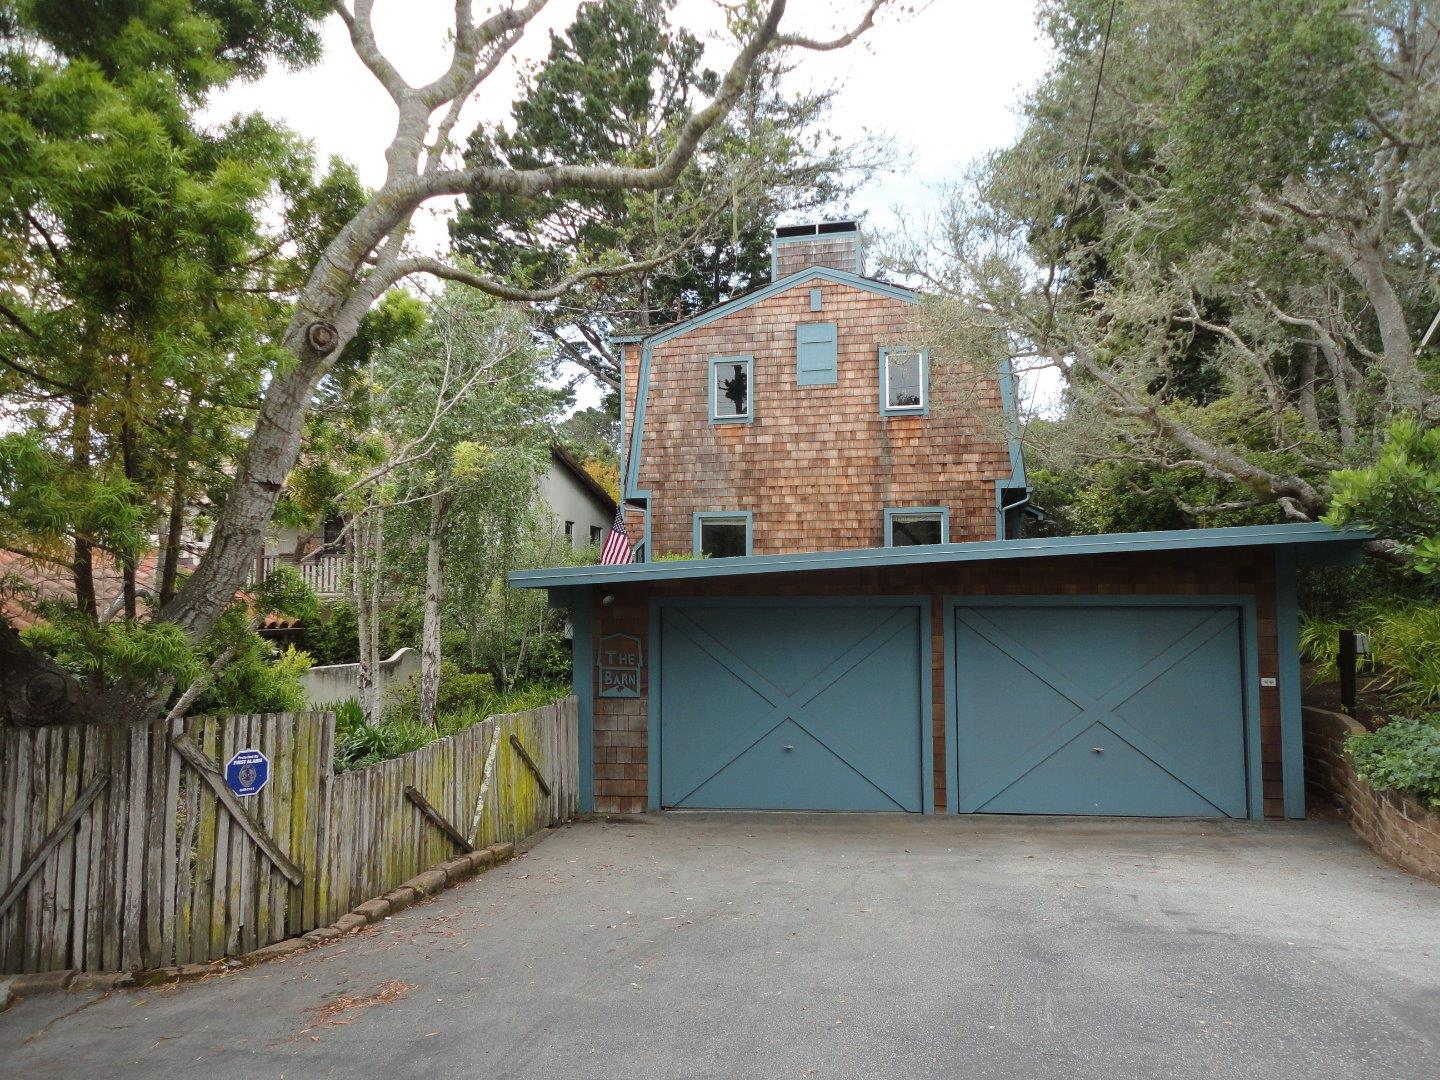 2 NW Mission ST, Carmel in Monterey County, CA 93921 Home for Sale